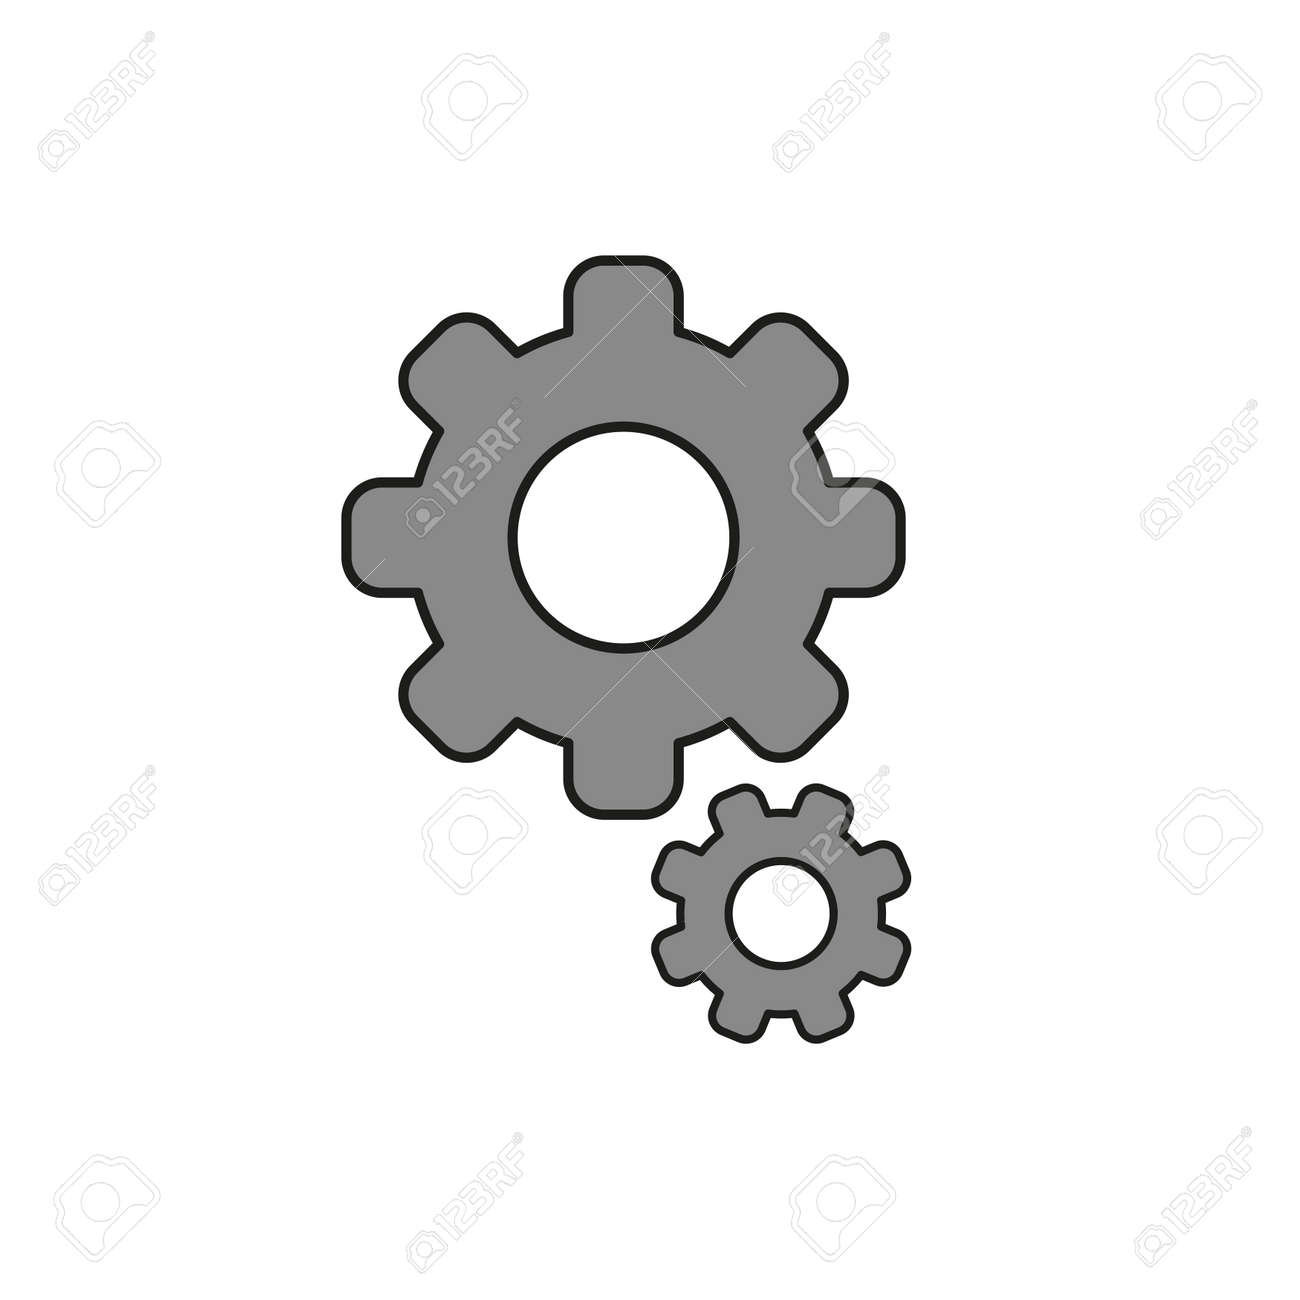 Flat design style vector illustration of gears symbol icon on white background. Colored, black outlines. - 125799575